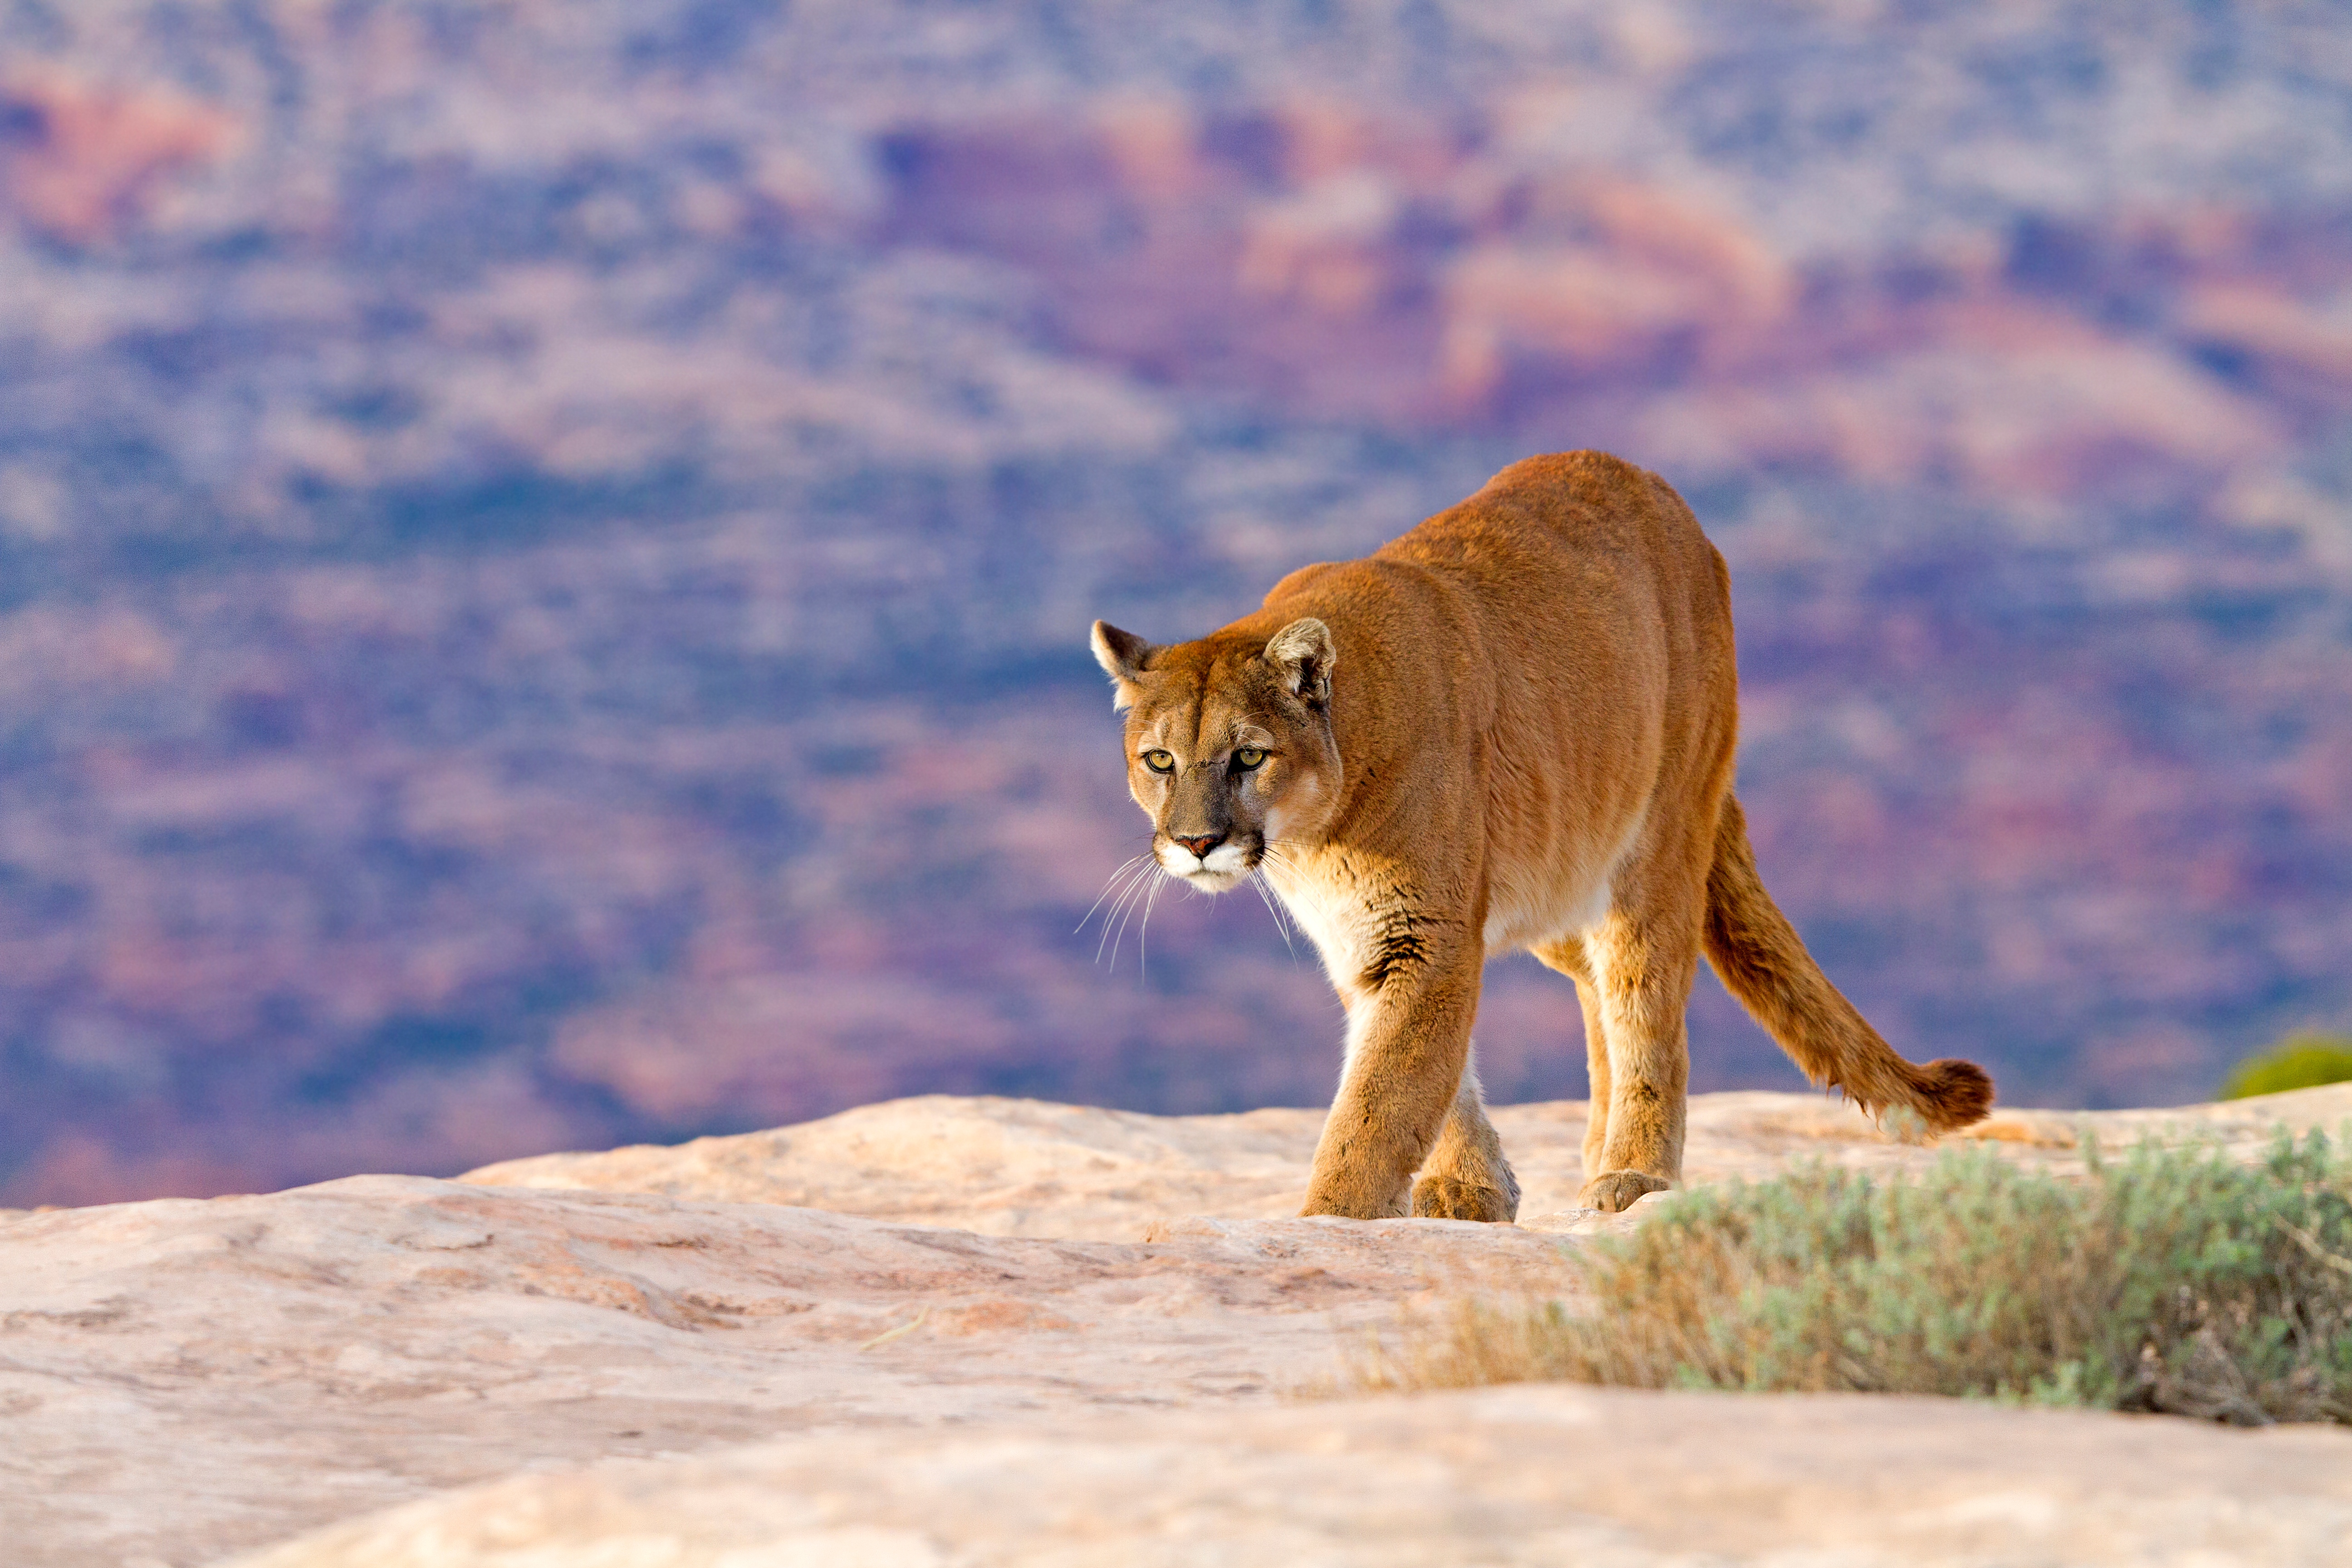 cougar, also known as mountain lion